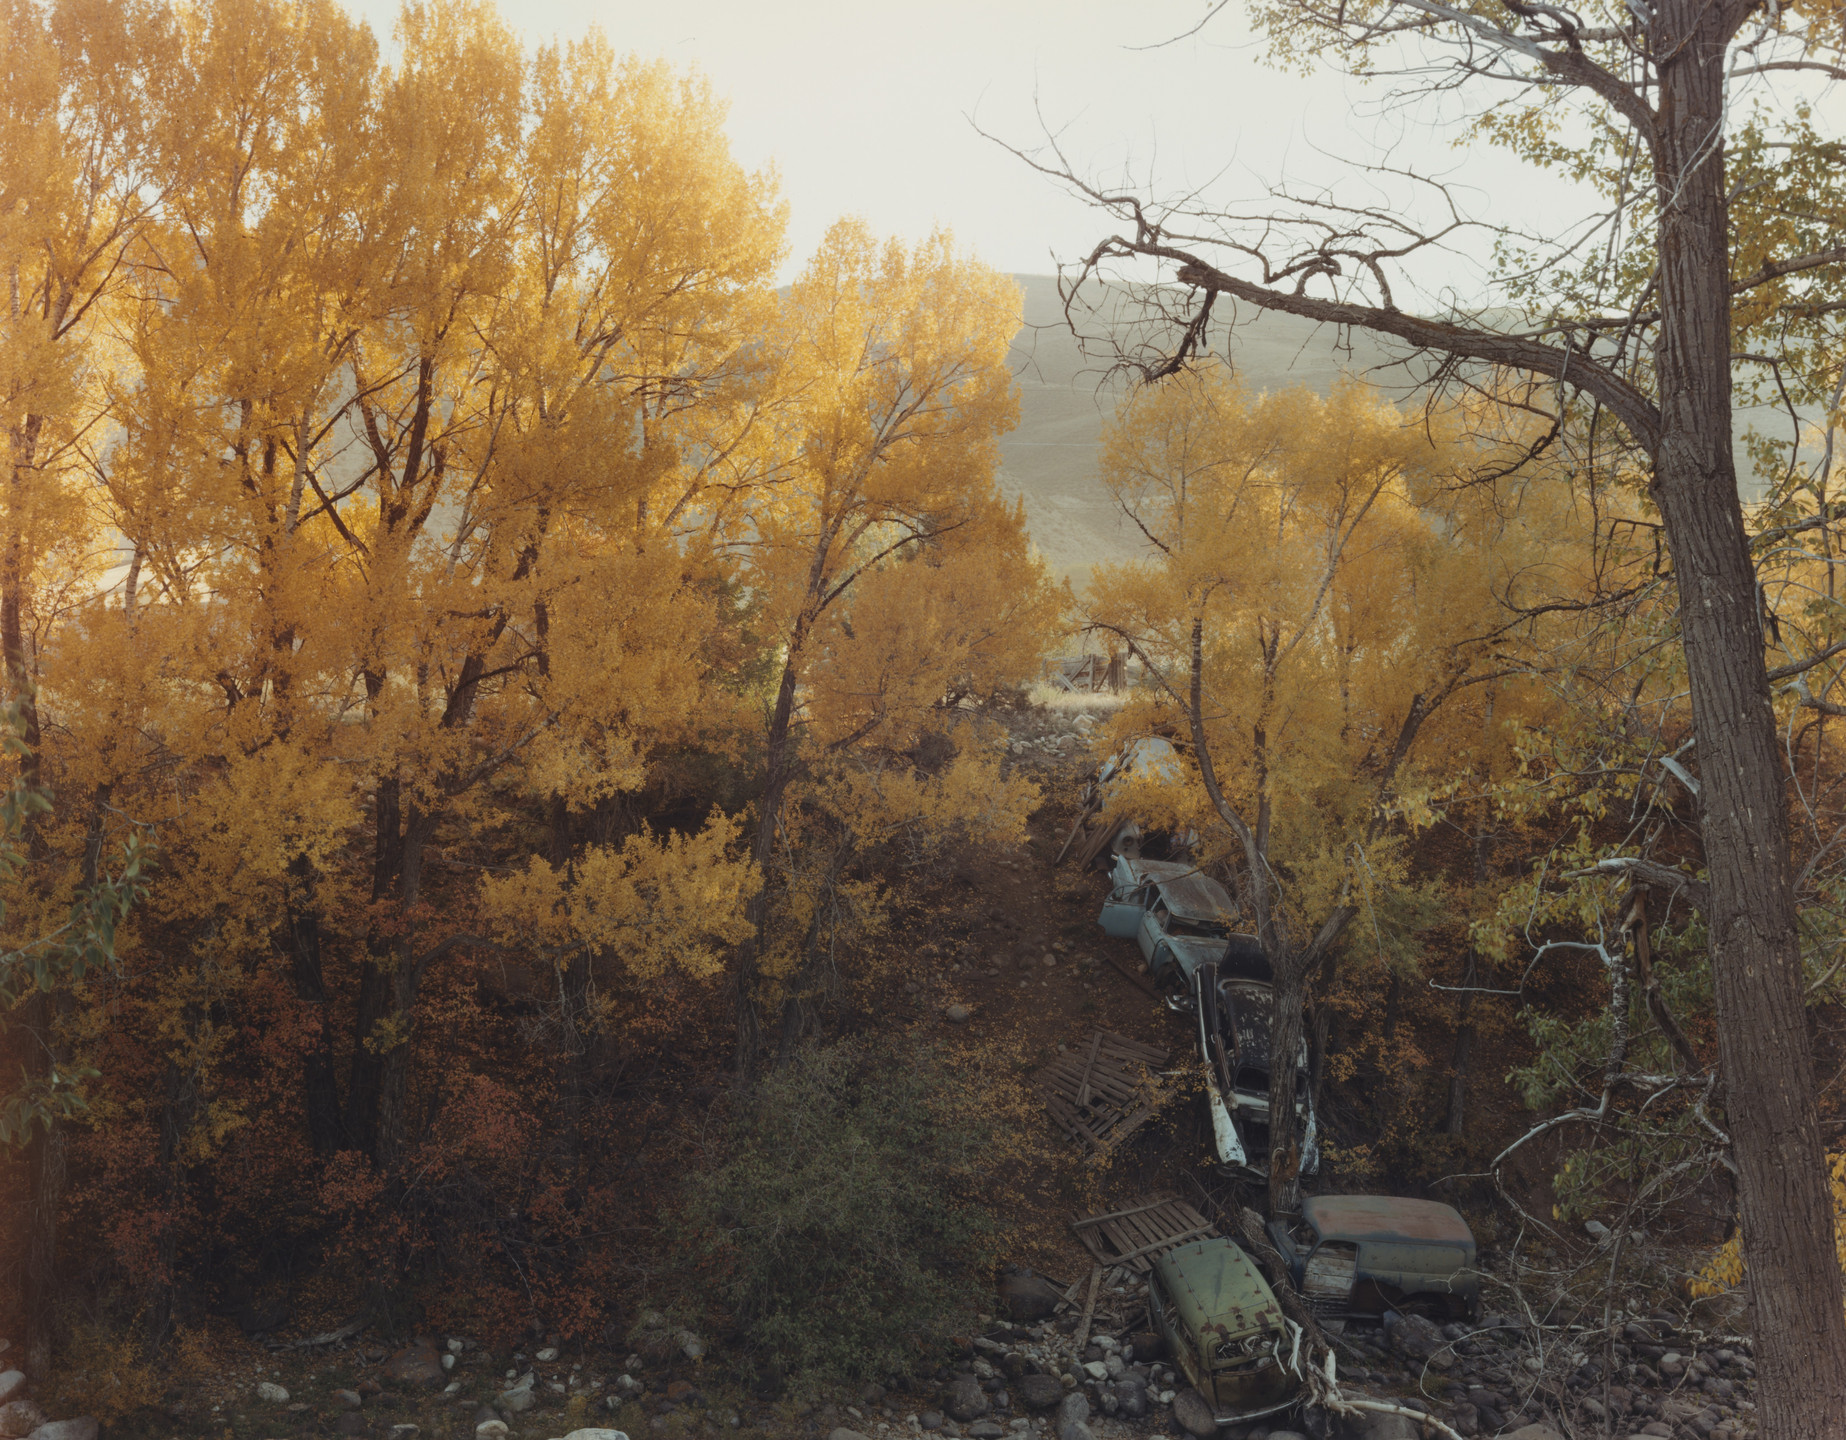 Joel Sternfeld. Near Vail, Colorado. October 1980